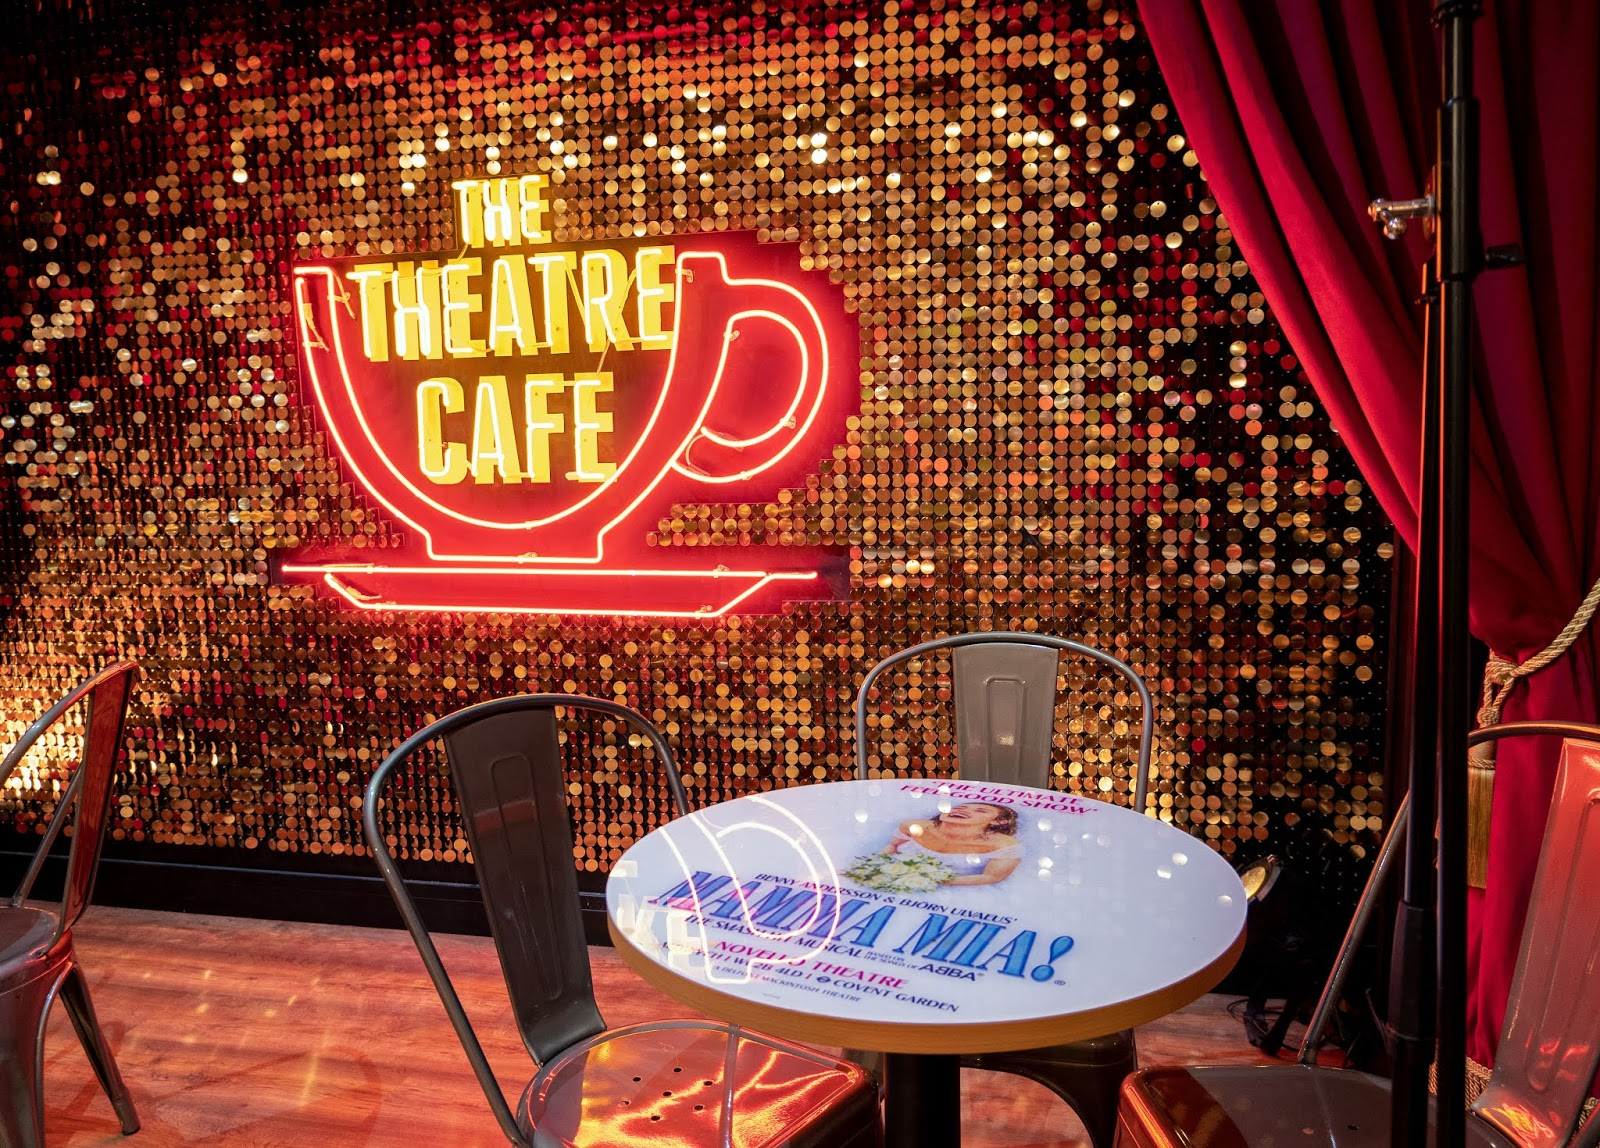 The Theatre Cafe stage, London